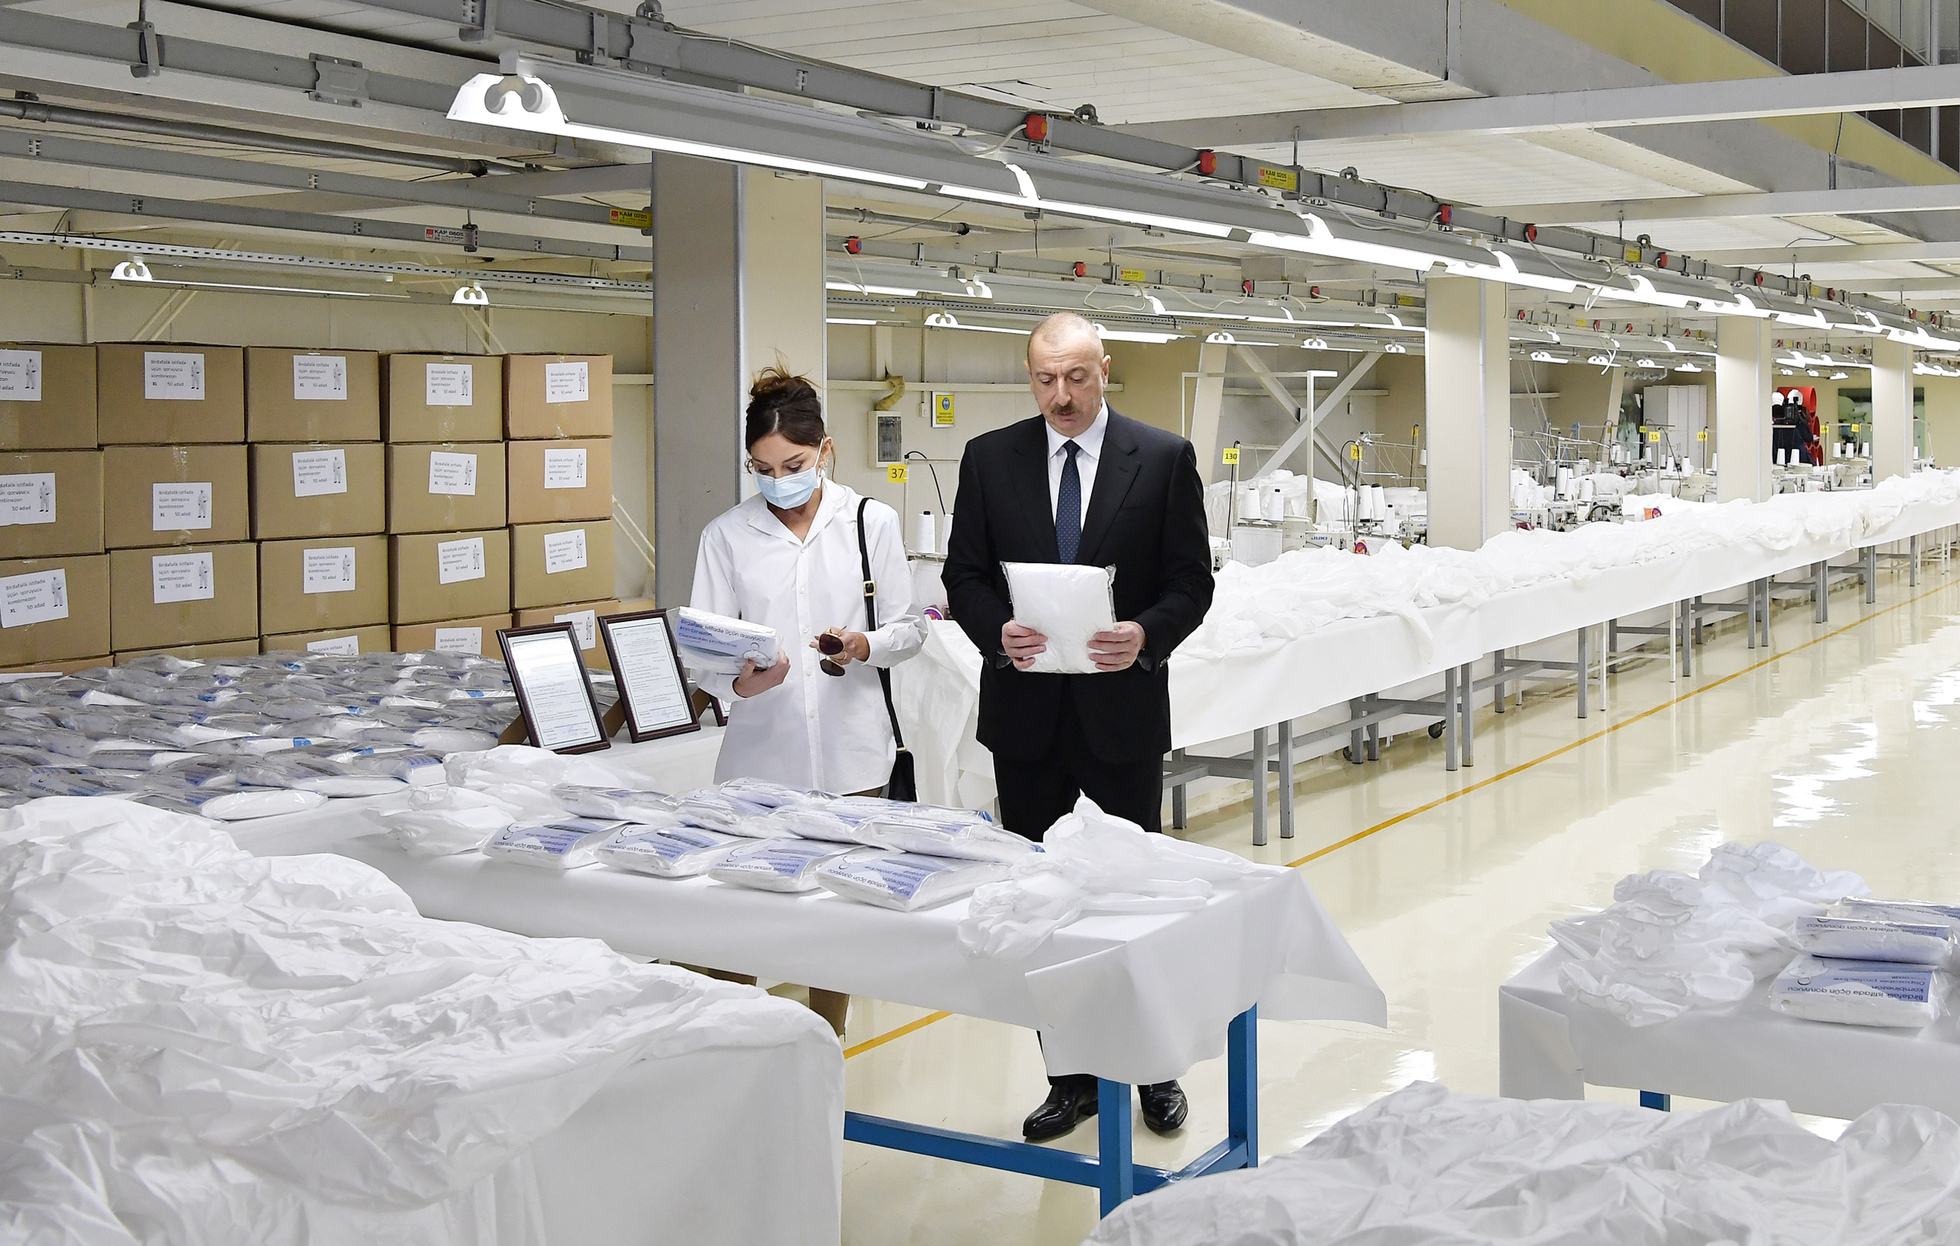 Ilham Aliyev attended the opening of «Gilan Textile Park» LLC's medical mask factory and production of protective overalls